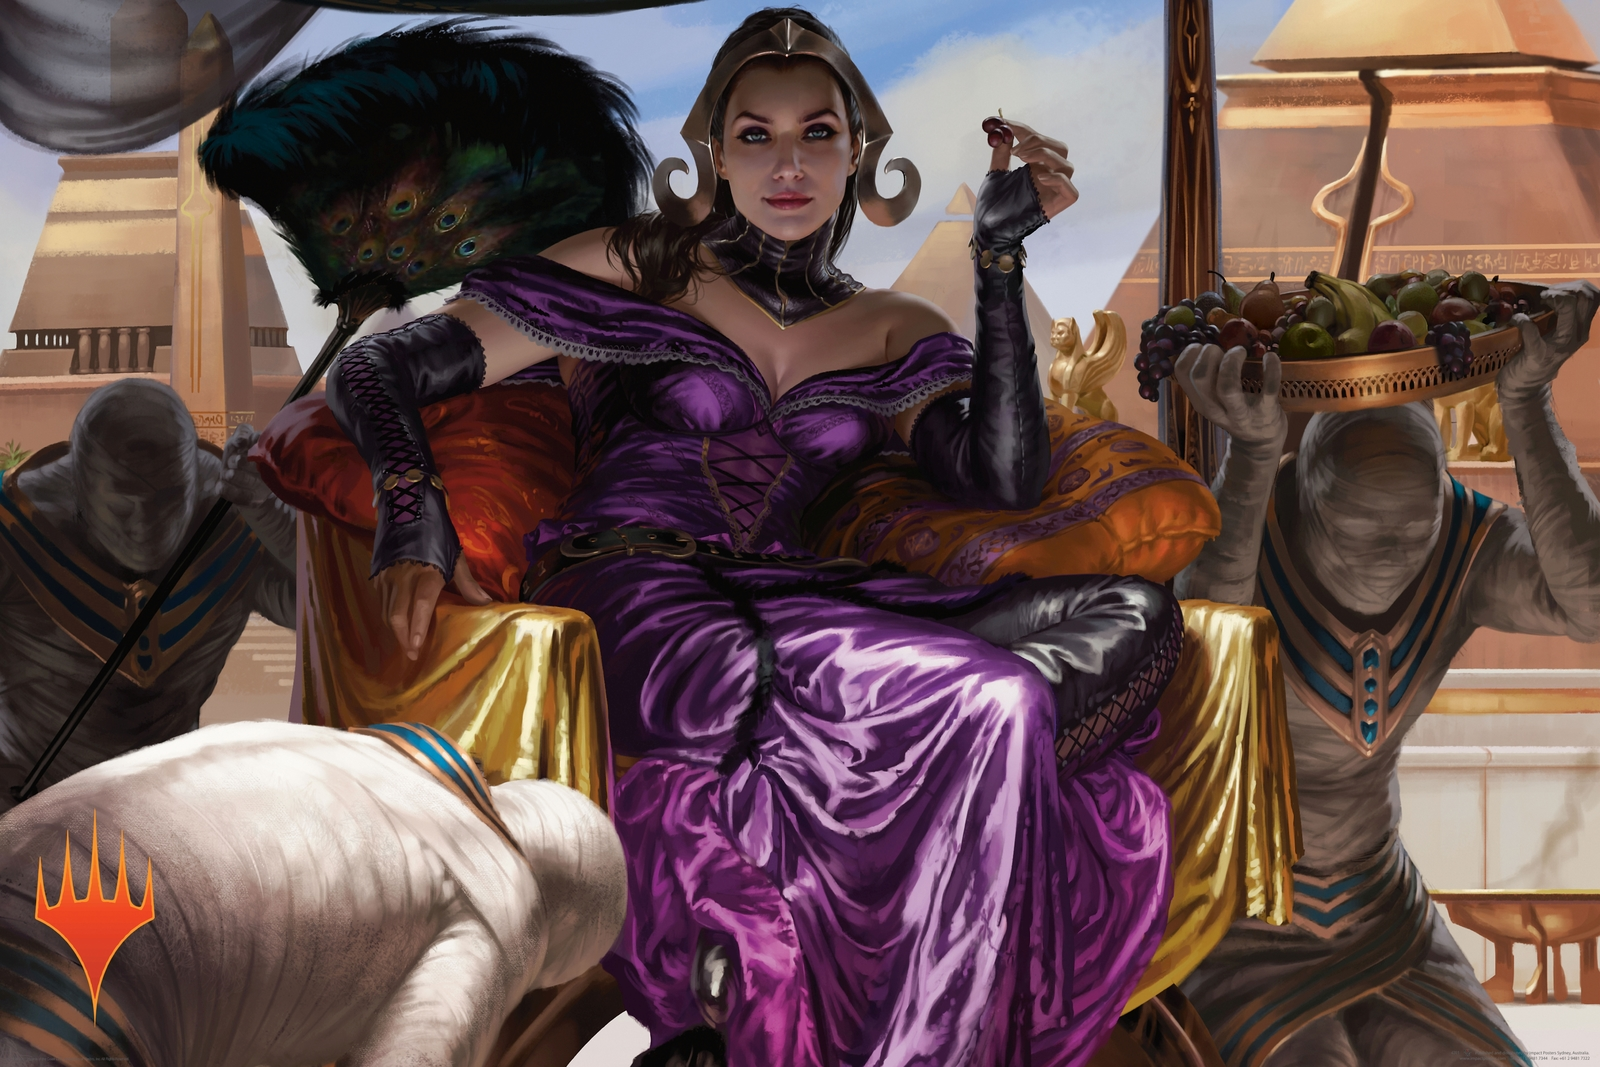 Magic The Gathering Lillianna Ltd Edition Poster (644) image